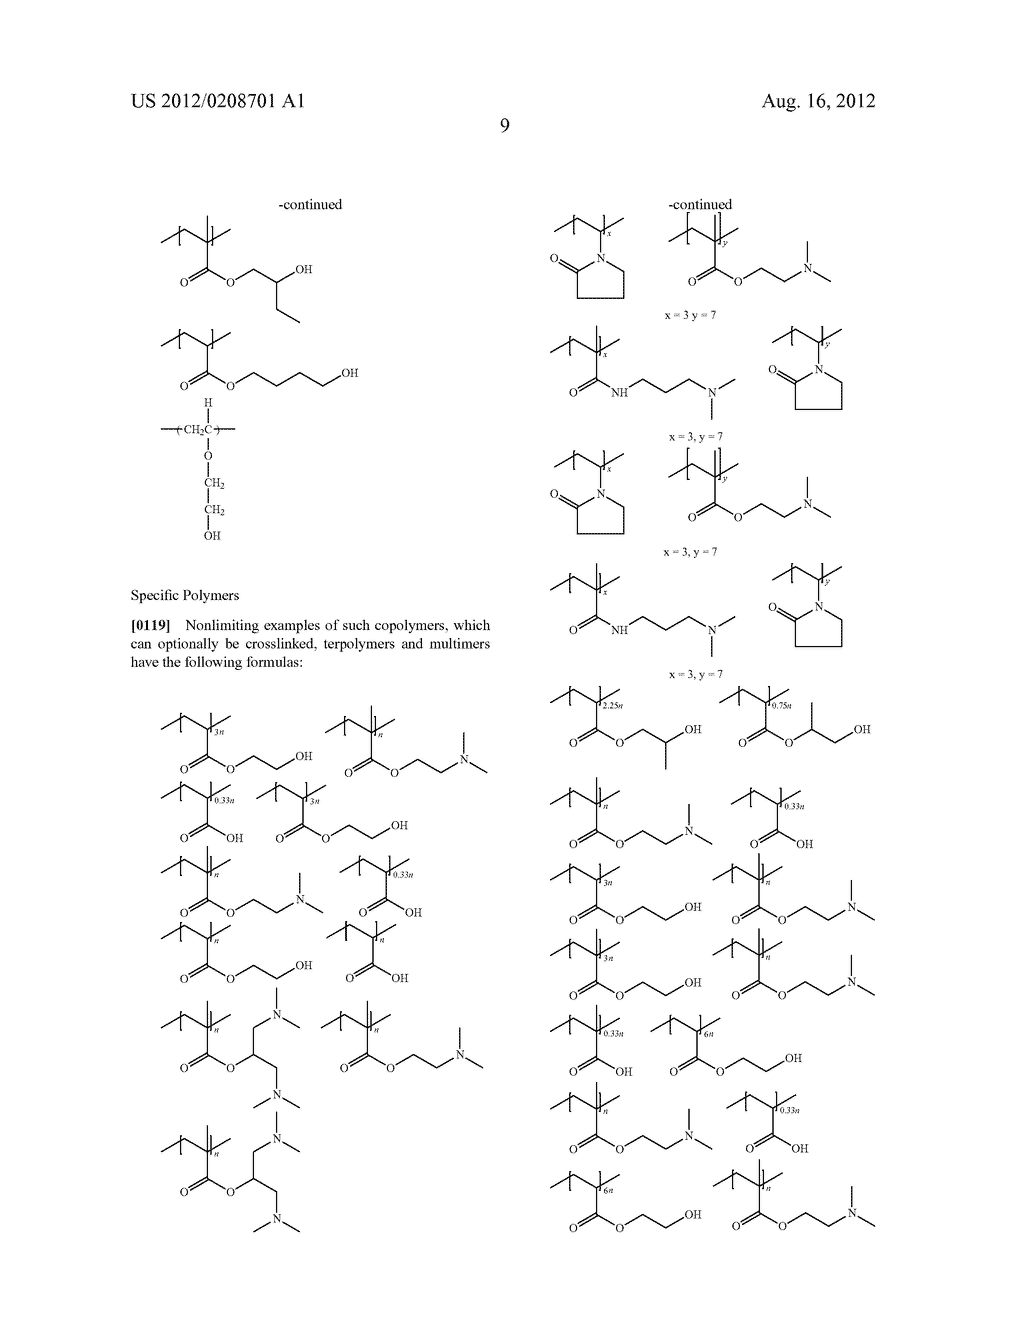 POLYMERS, COMPOSITIONS AND METHODS OF USE FOR FOAMS, LAUNDRY DETERGENTS,     SHOWER RINSES AND COAGULANTS - diagram, schematic, and image 10